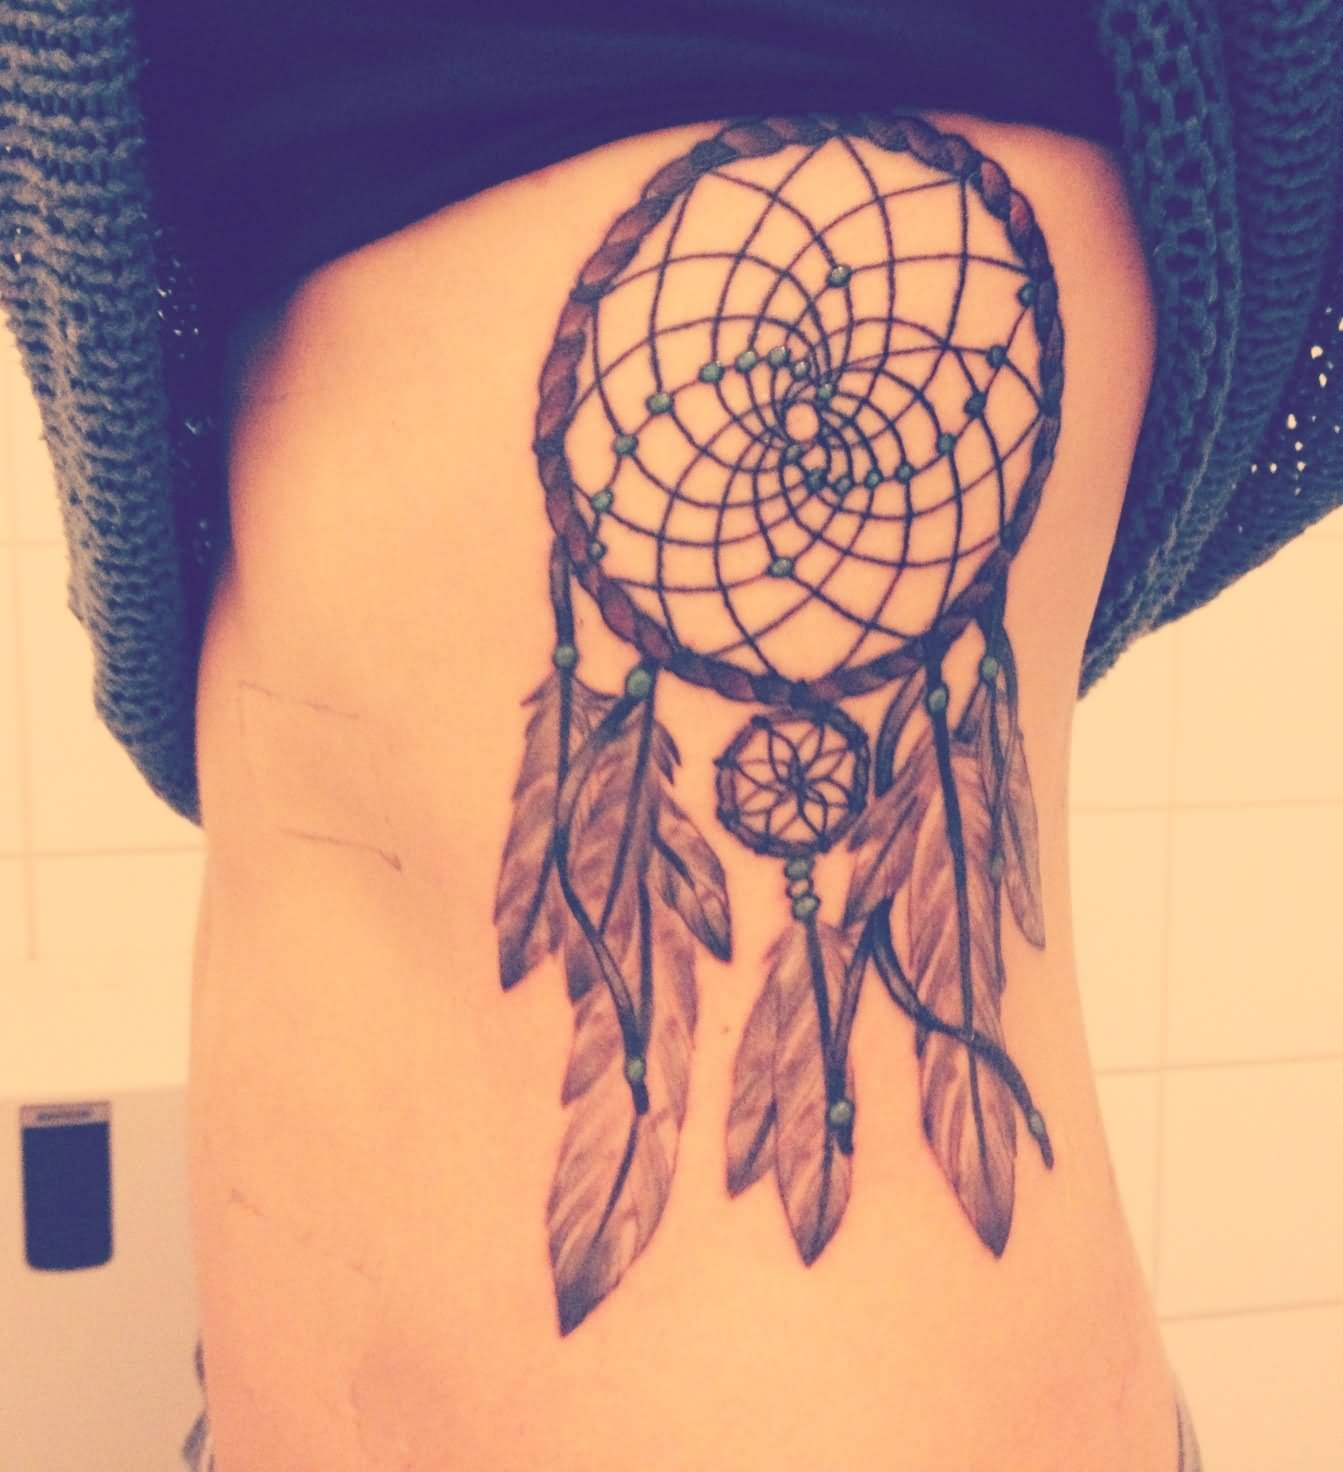 Dream Catcher Tattoo On Rib Cage Girl With Dreamcatcher Tattoo On Rib Cage 8